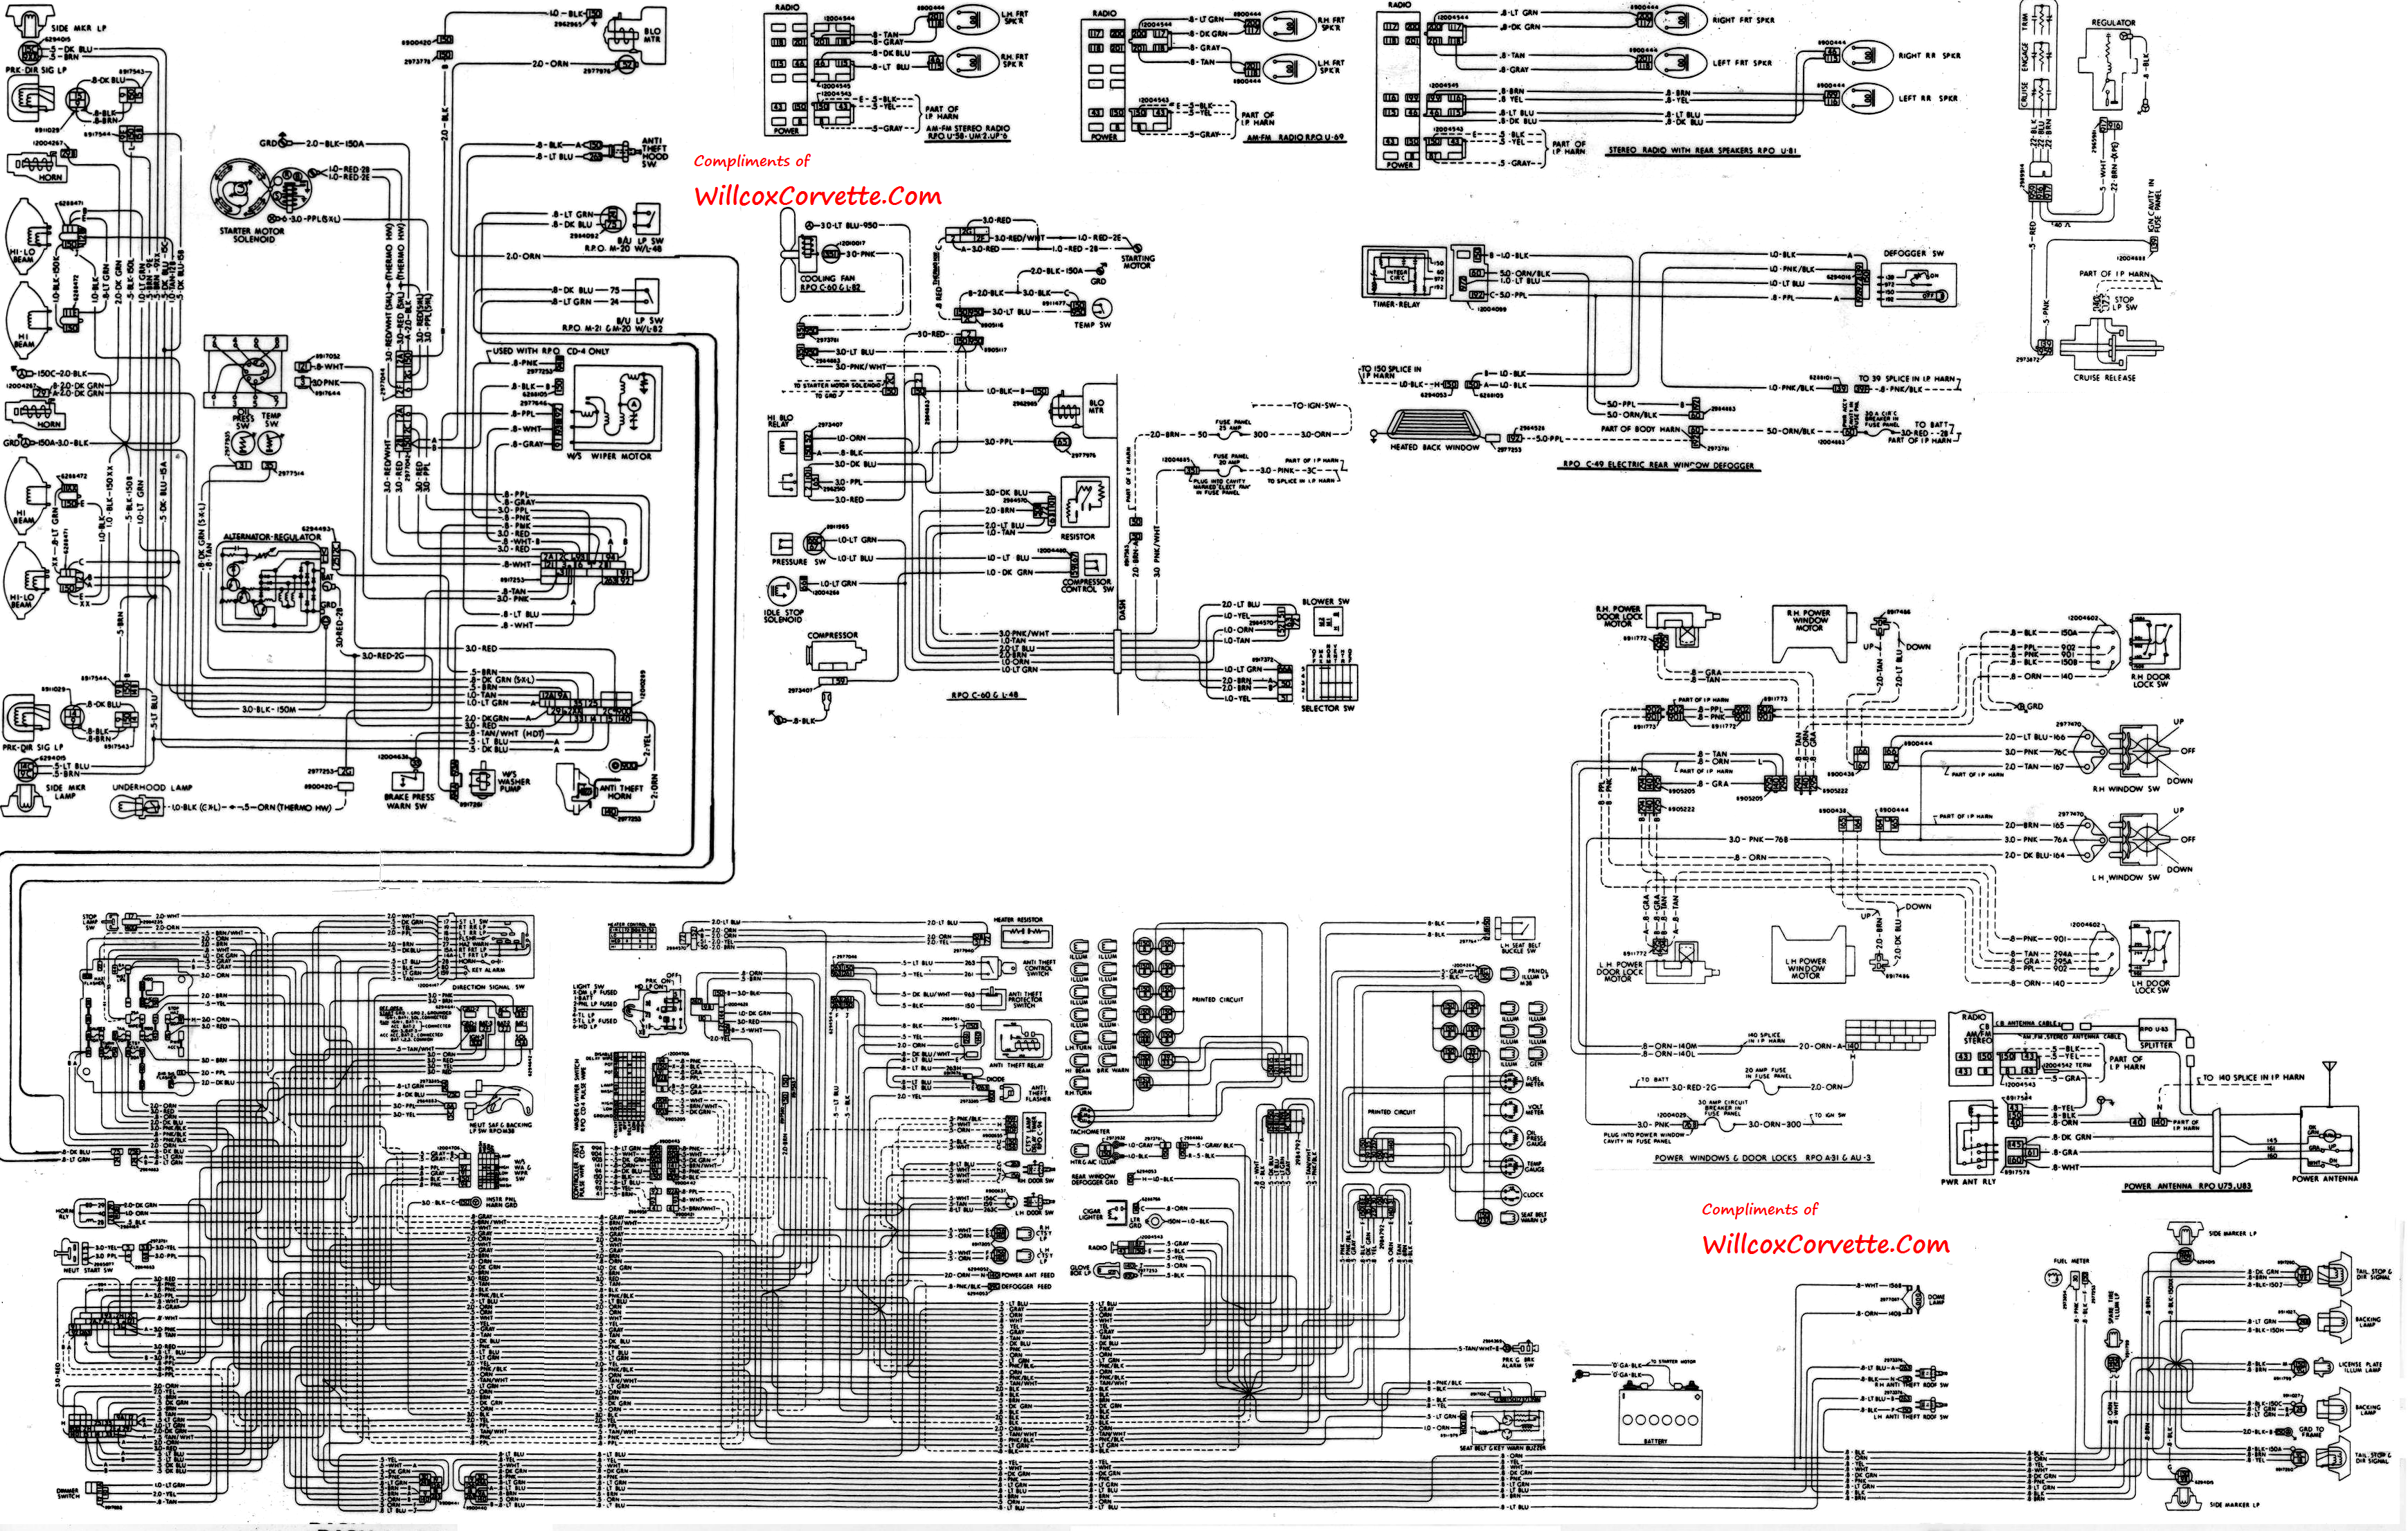 1979 wire diagram 1979 corvette tracer wiring diagram tracer schematic willcox 1969 corvette wiring diagram at gsmportal.co